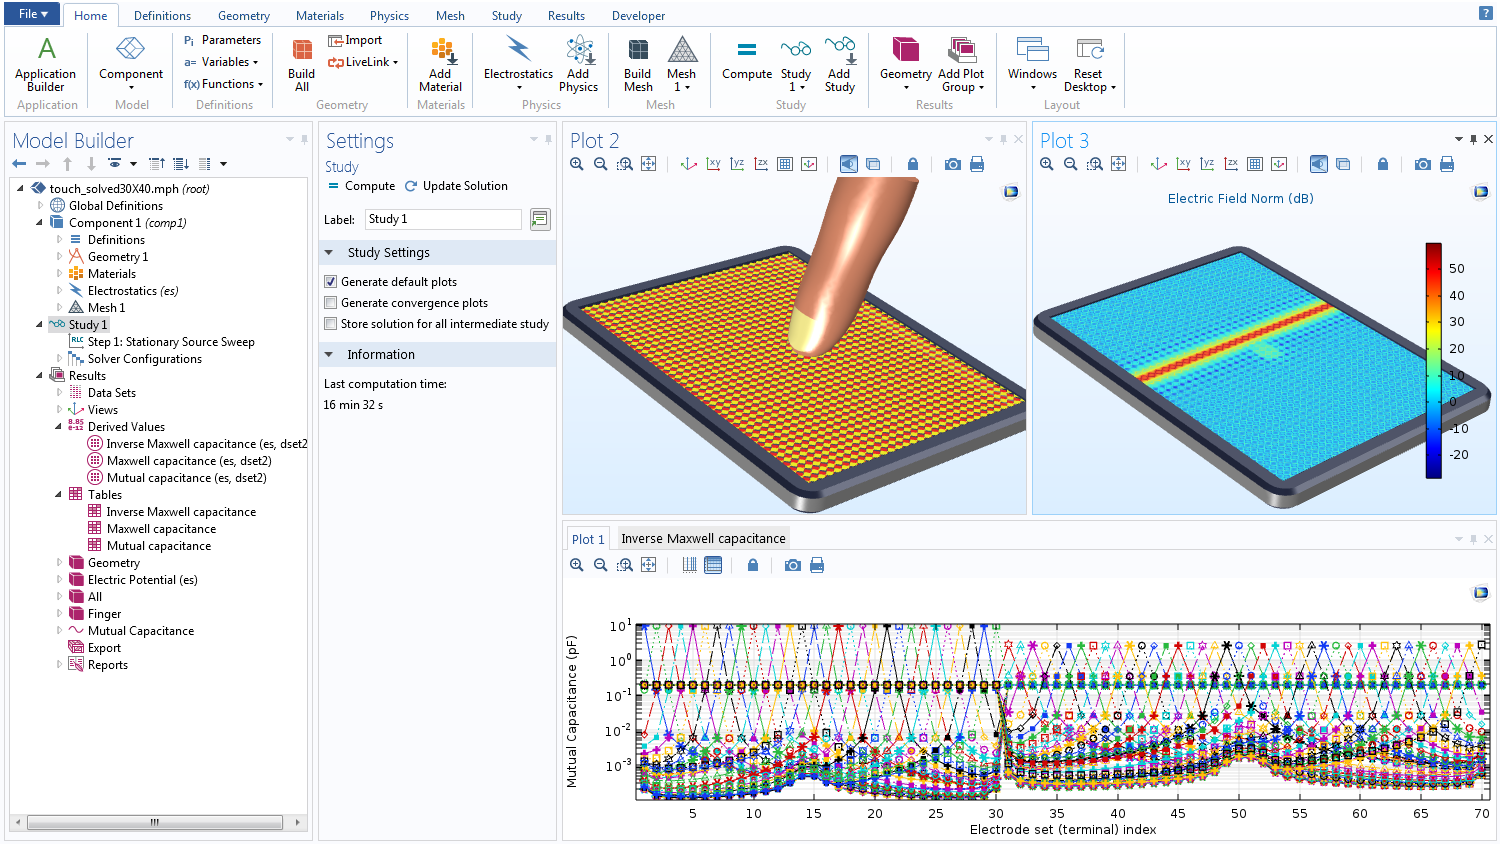 A screenshot of the COMSOL software GUI showing the underlying model of the Touchscreen Simulator app.